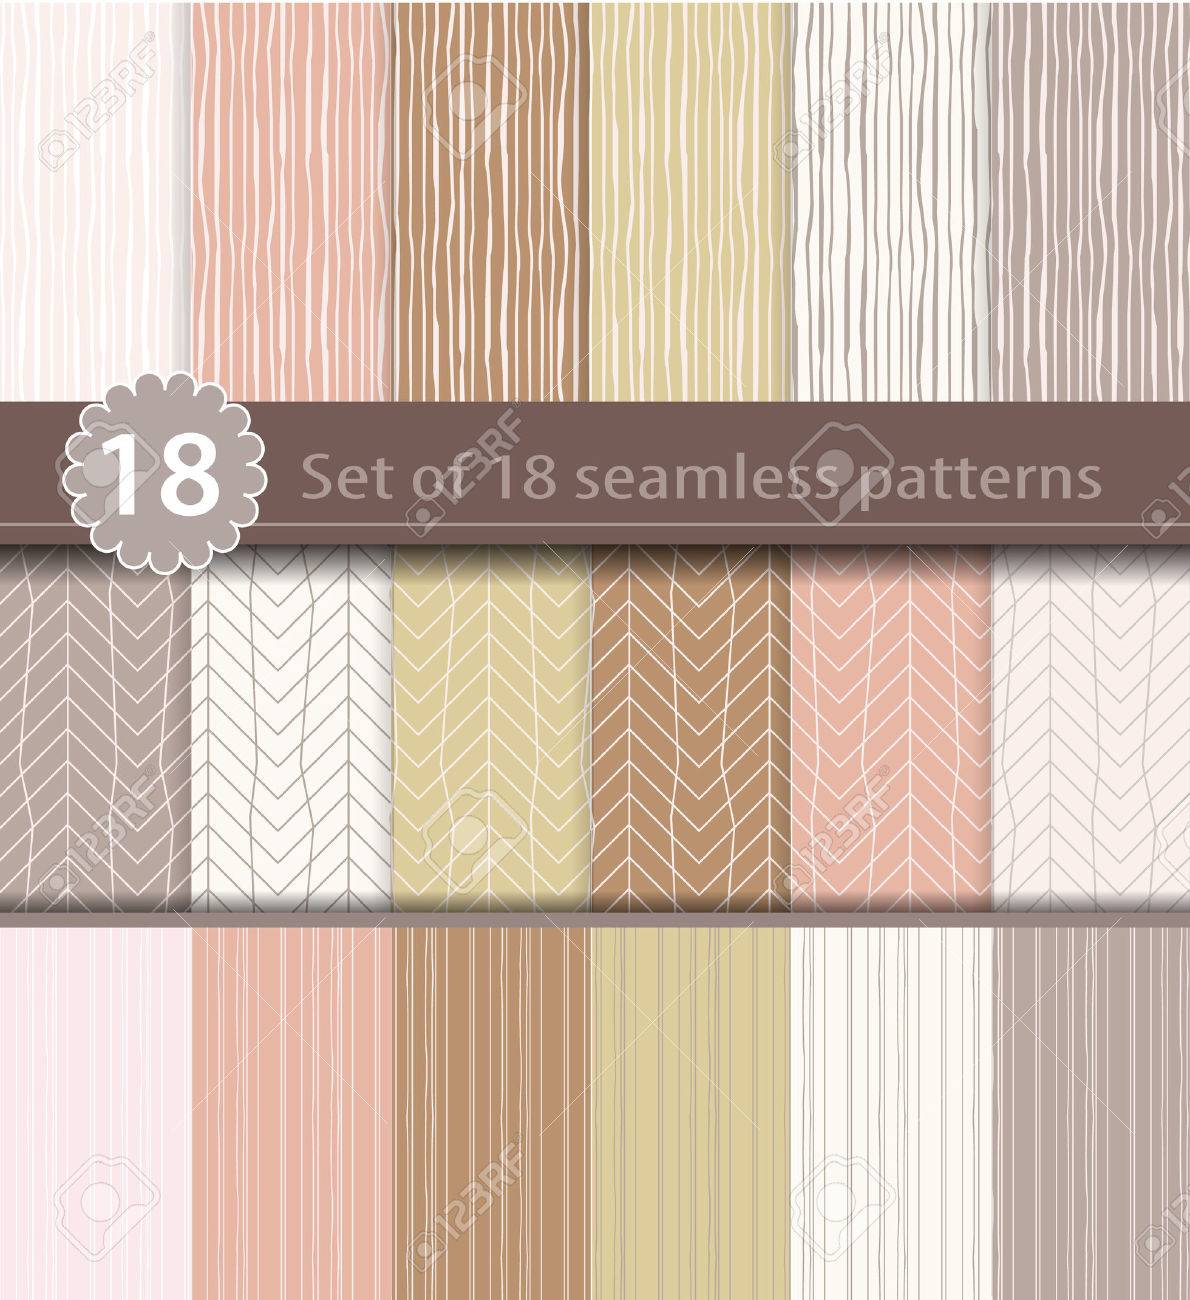 Set of 18 seamless patterns, wood, line art design Stock Vector - 43526525